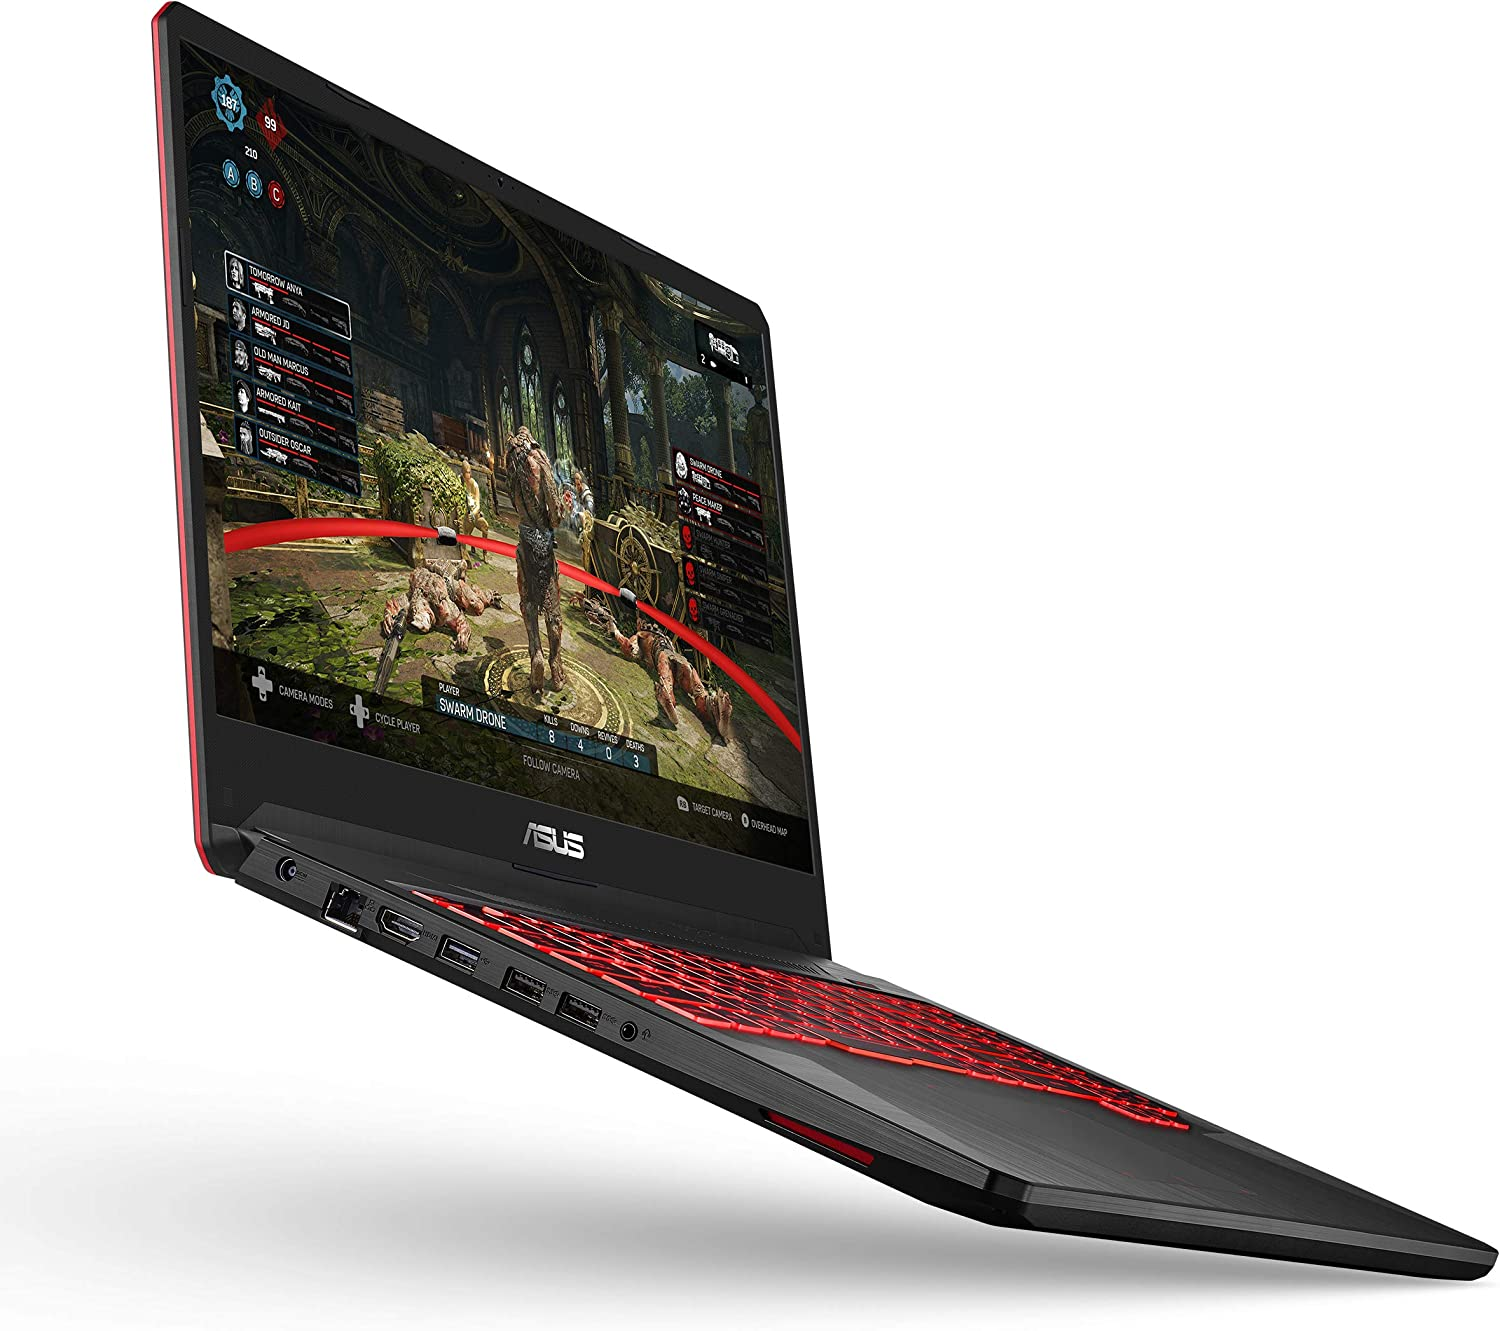 Amazon Ca Laptops Asus Fx705gd Dh71 Ca Tuf Gaming Laptop 17 3 Fhd 8th Gen Intel Core I7 8750h Gtx 1050 8gb Ddr4 128gb Pcie Ssd Plus 1tb Hdd